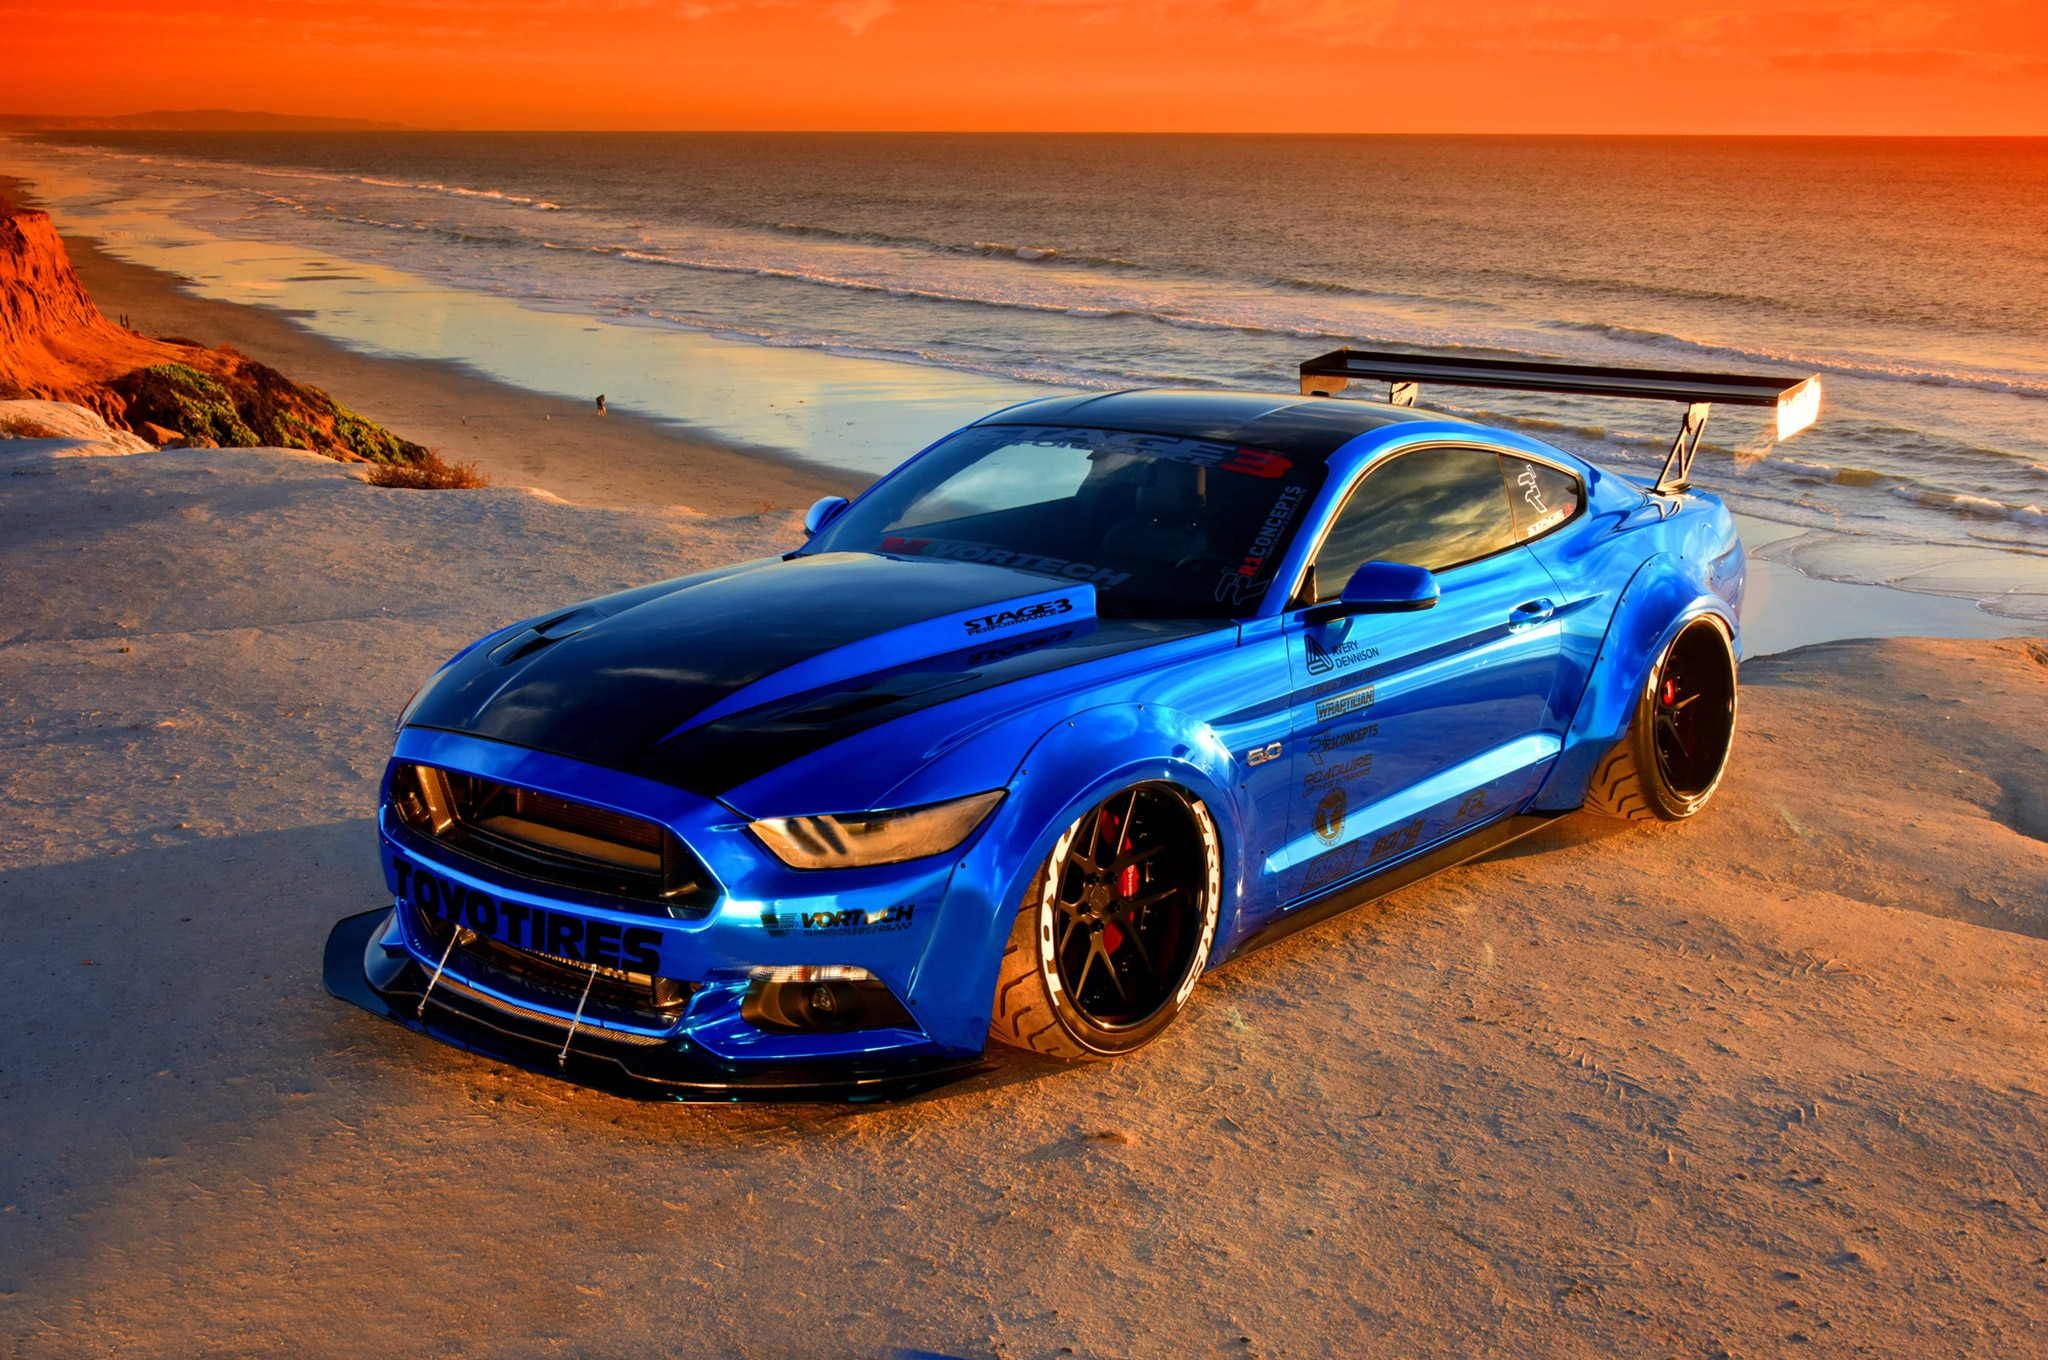 2015 Ford Mustang Blue Chrome Soto 20